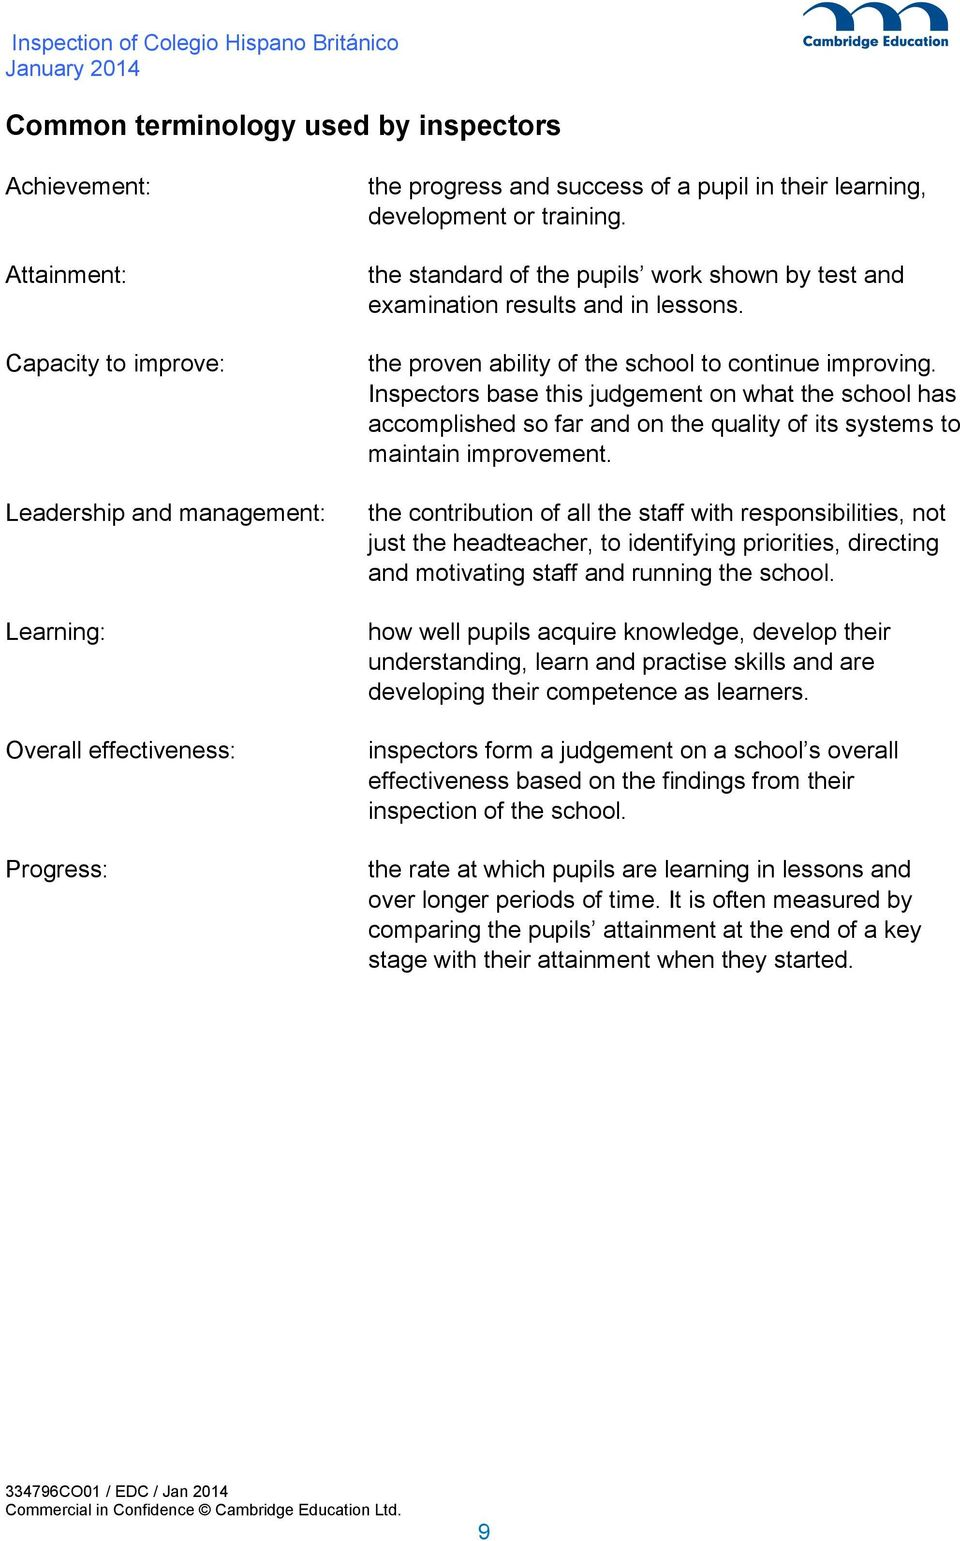 Inspectors base this judgement on what the school has accomplished so far and on the quality of its systems to maintain improvement.